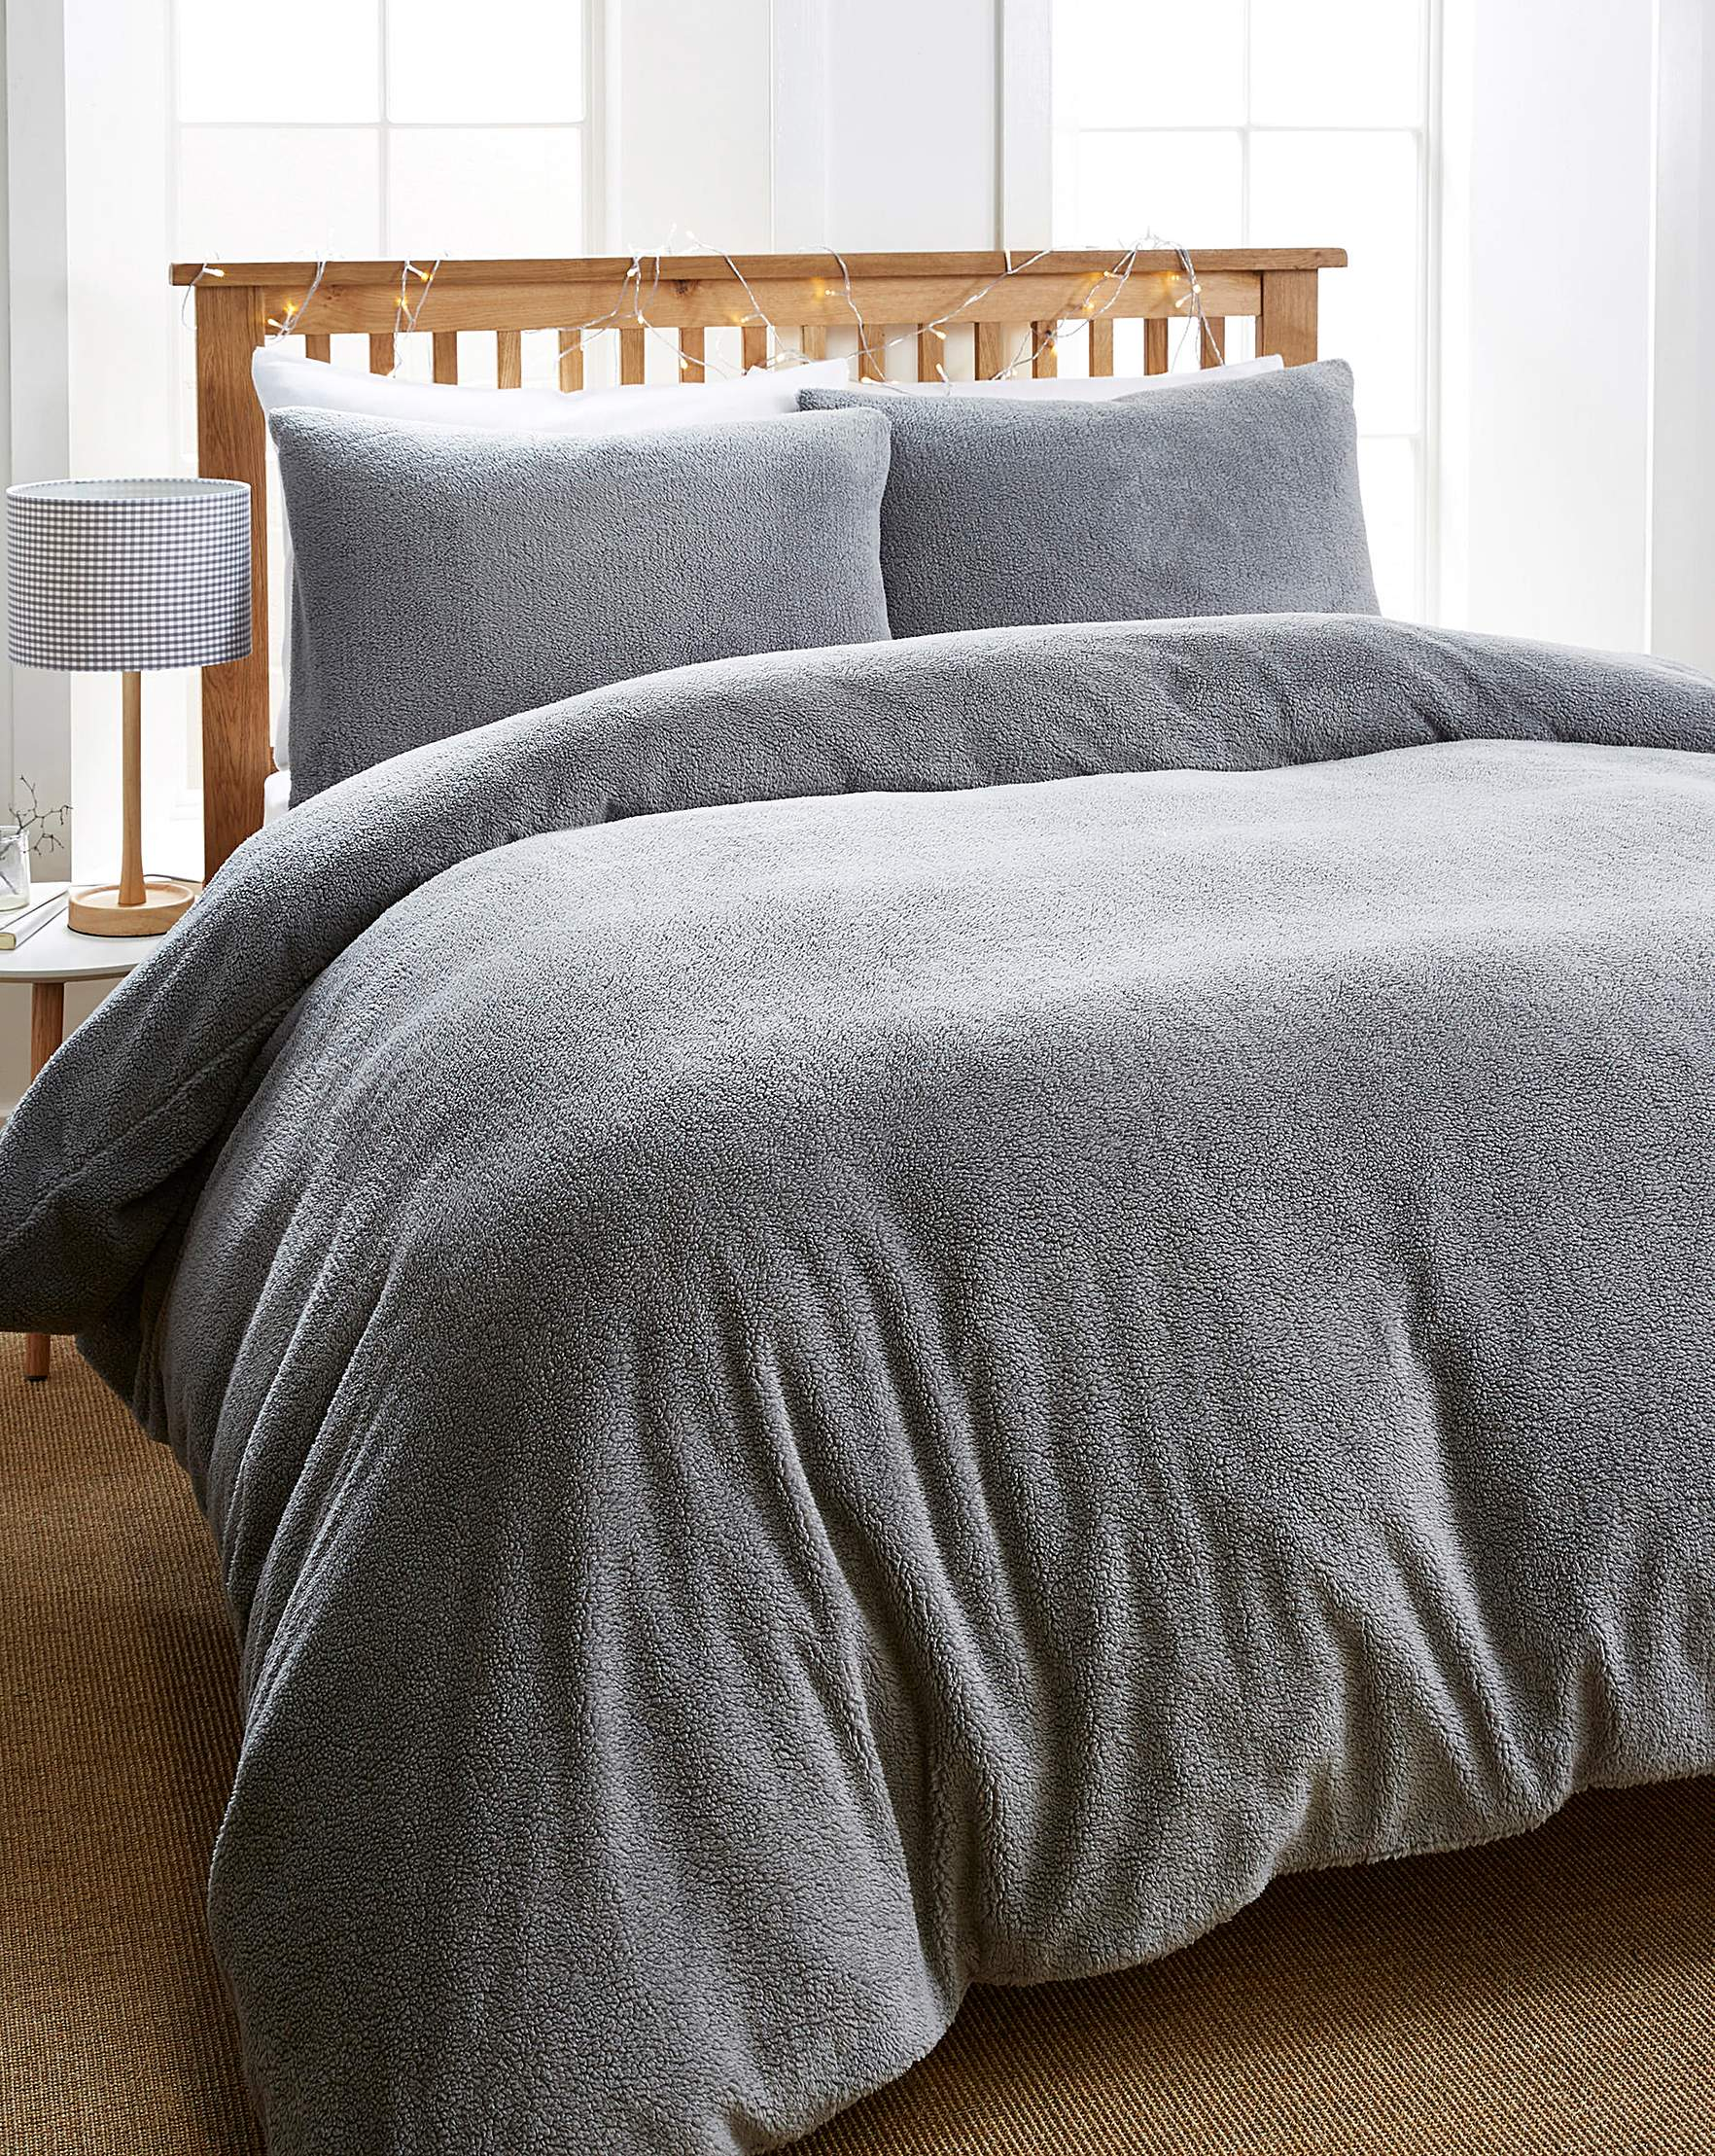 cream rails matalan product cover main ixlib detail fleece duvet